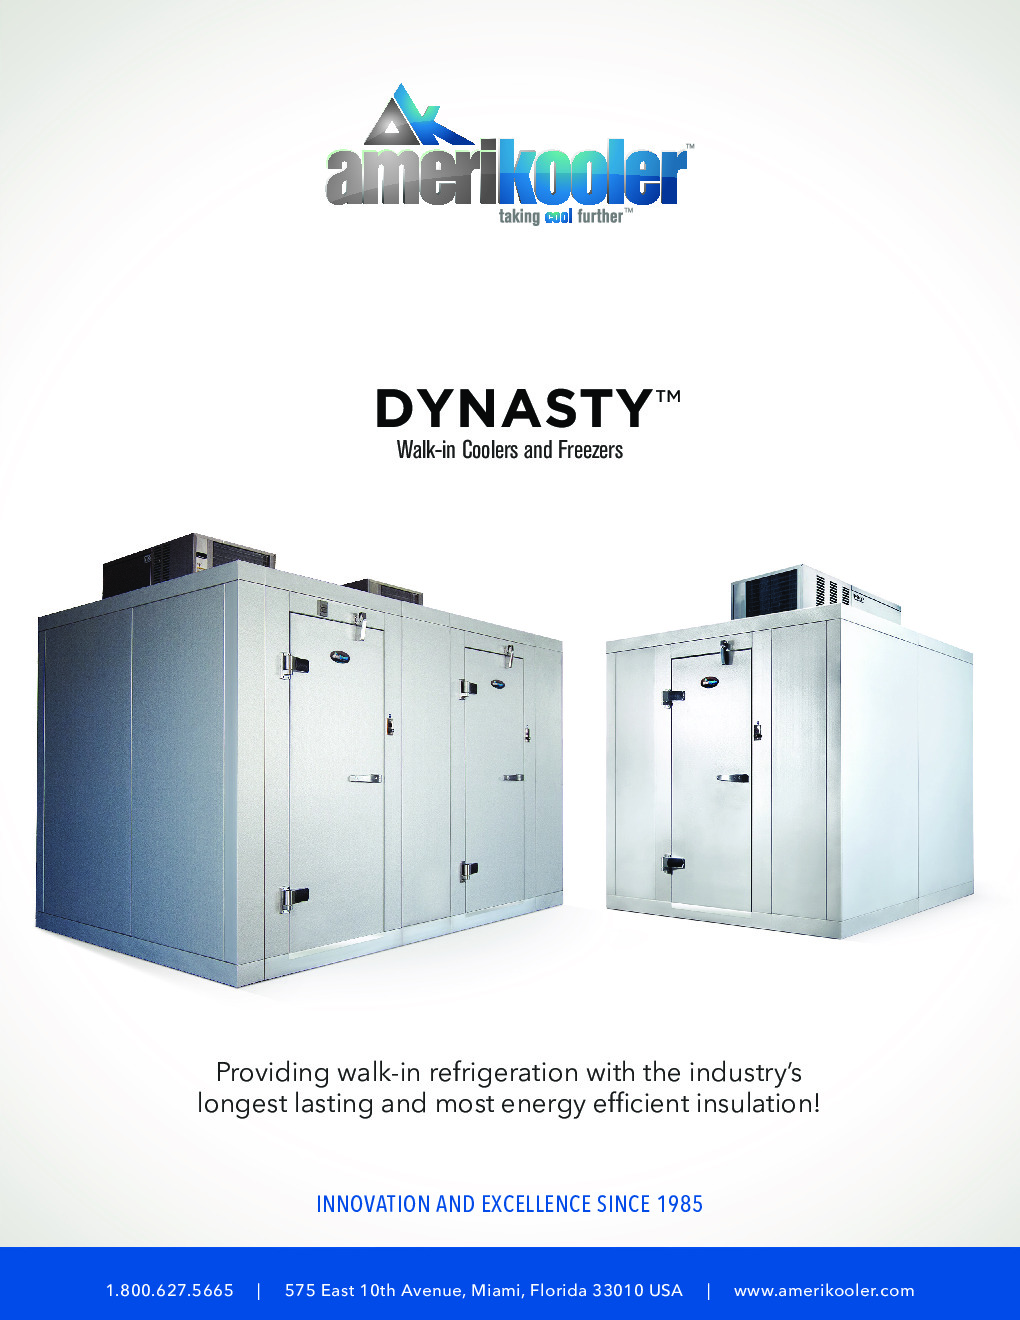 AmeriKooler DW081377N-4/9-RM 8' X 13' Walk-In Cooler, 9' L Cooler without Floor and 4' L Freezer, Remote